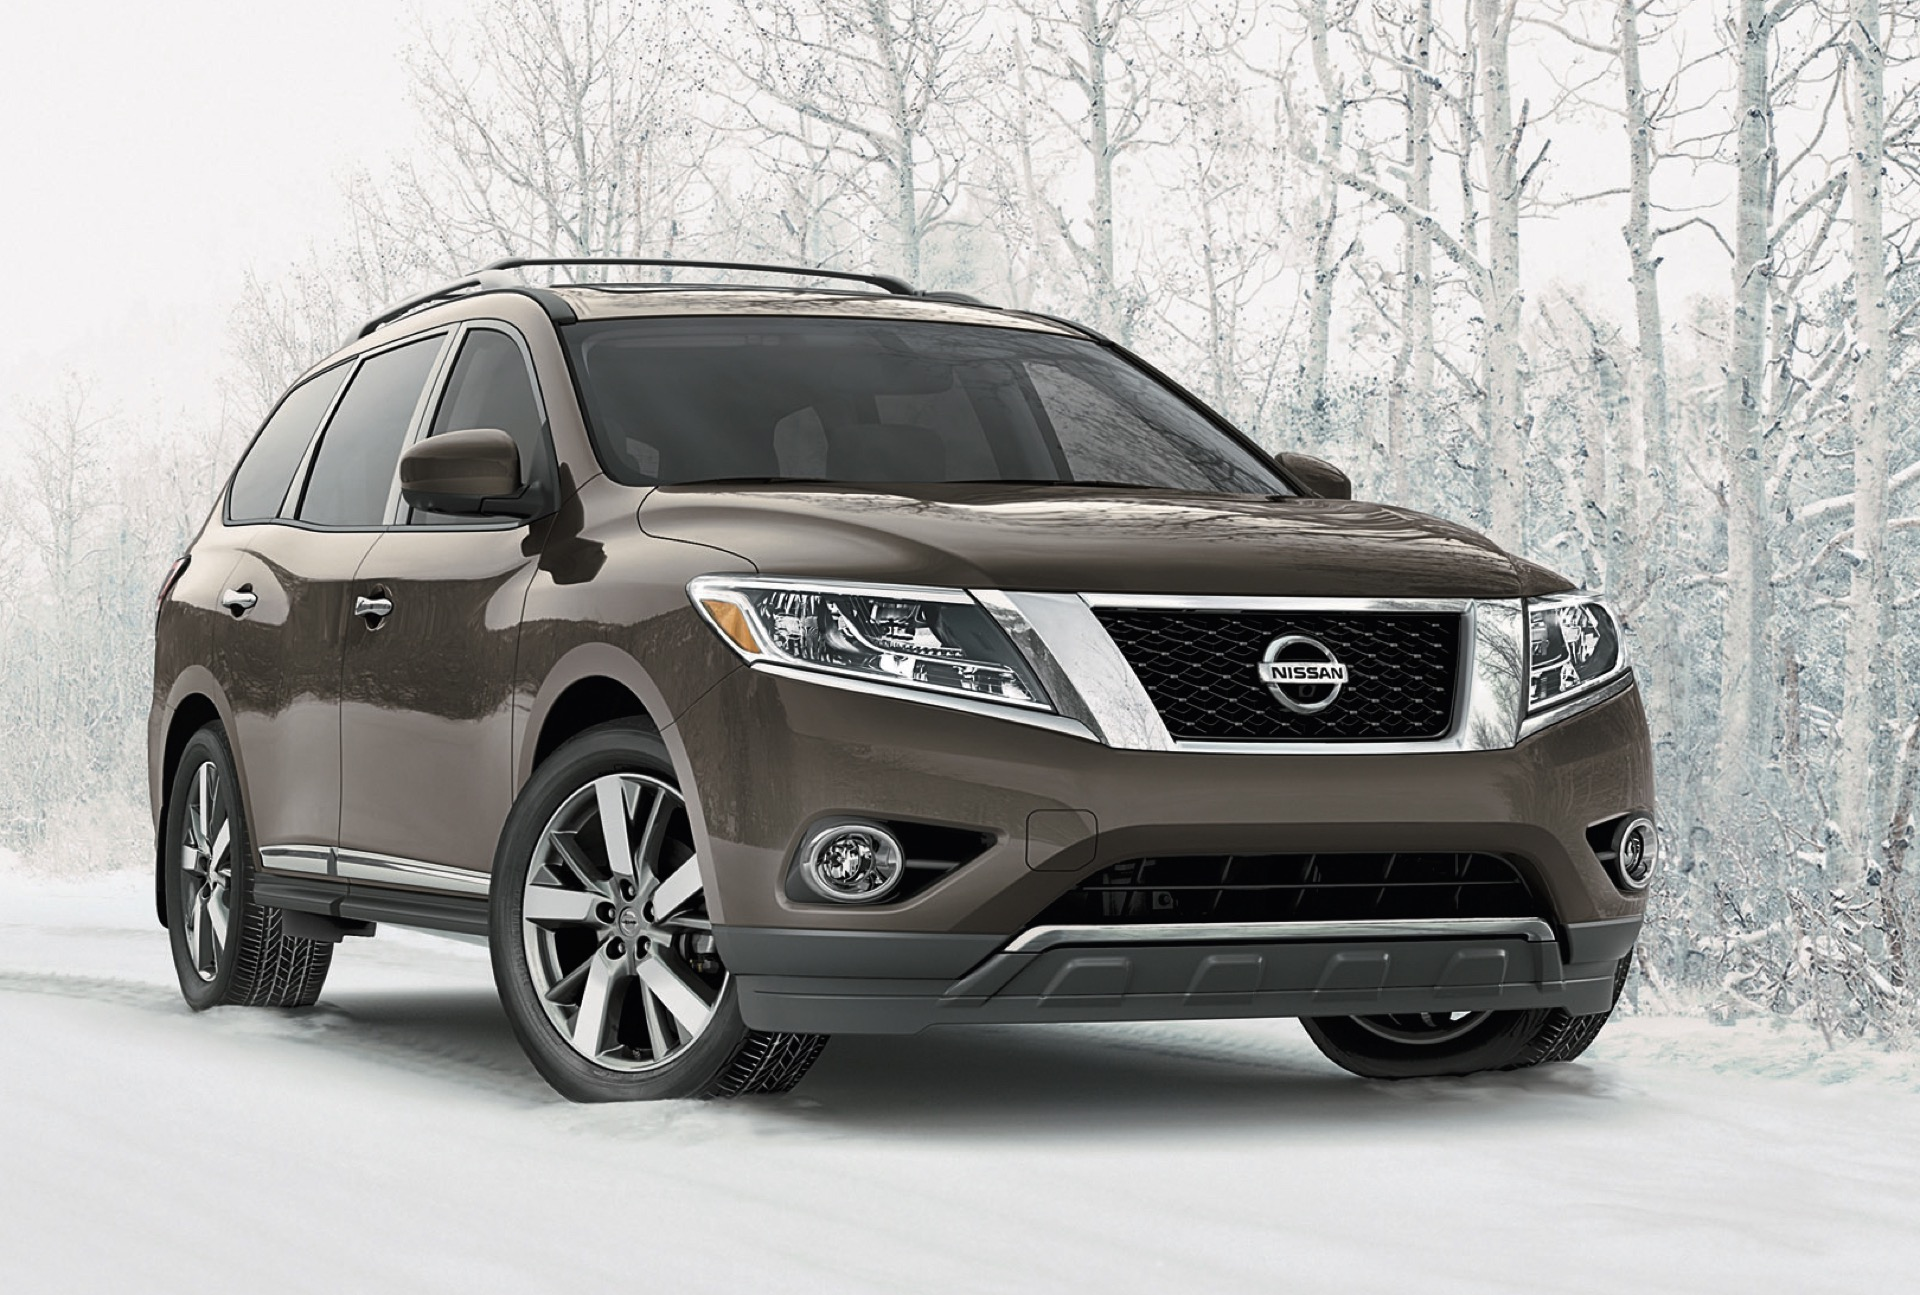 2016 Nissan Pathfinder Review, Ratings, Specs, Prices, and ...